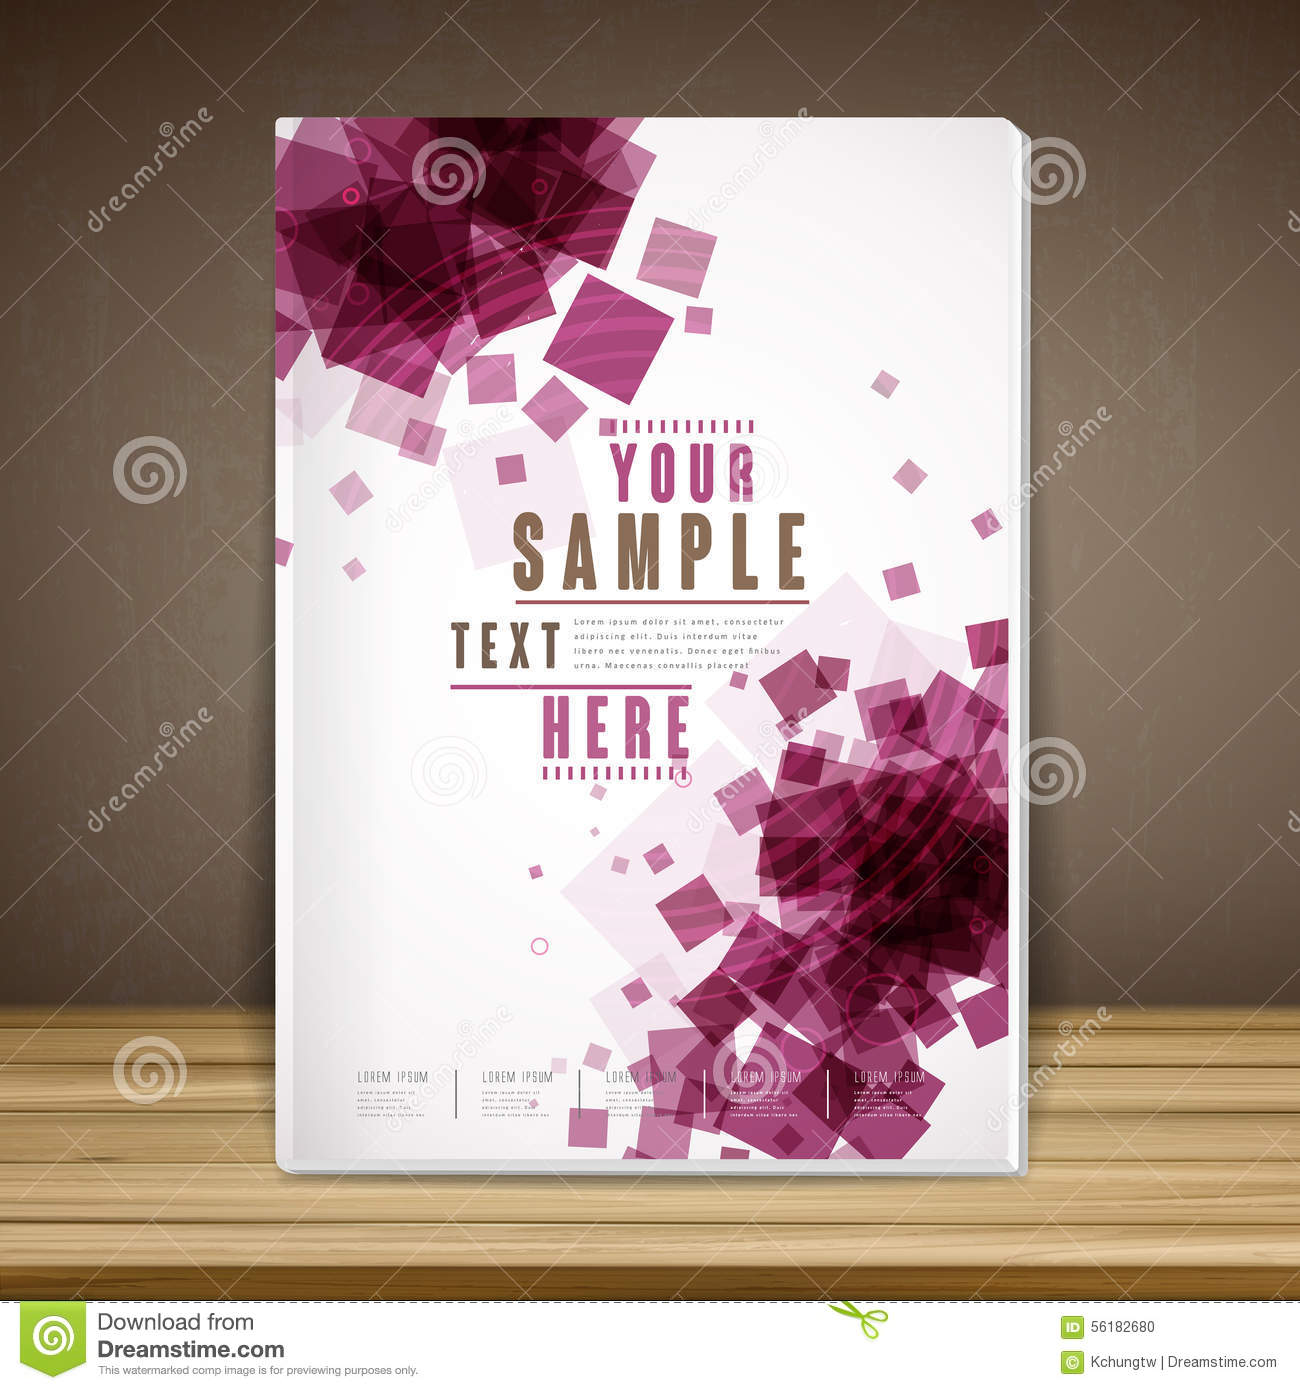 Elegant Book Cover Template : Trendy book cover template design stock vector image